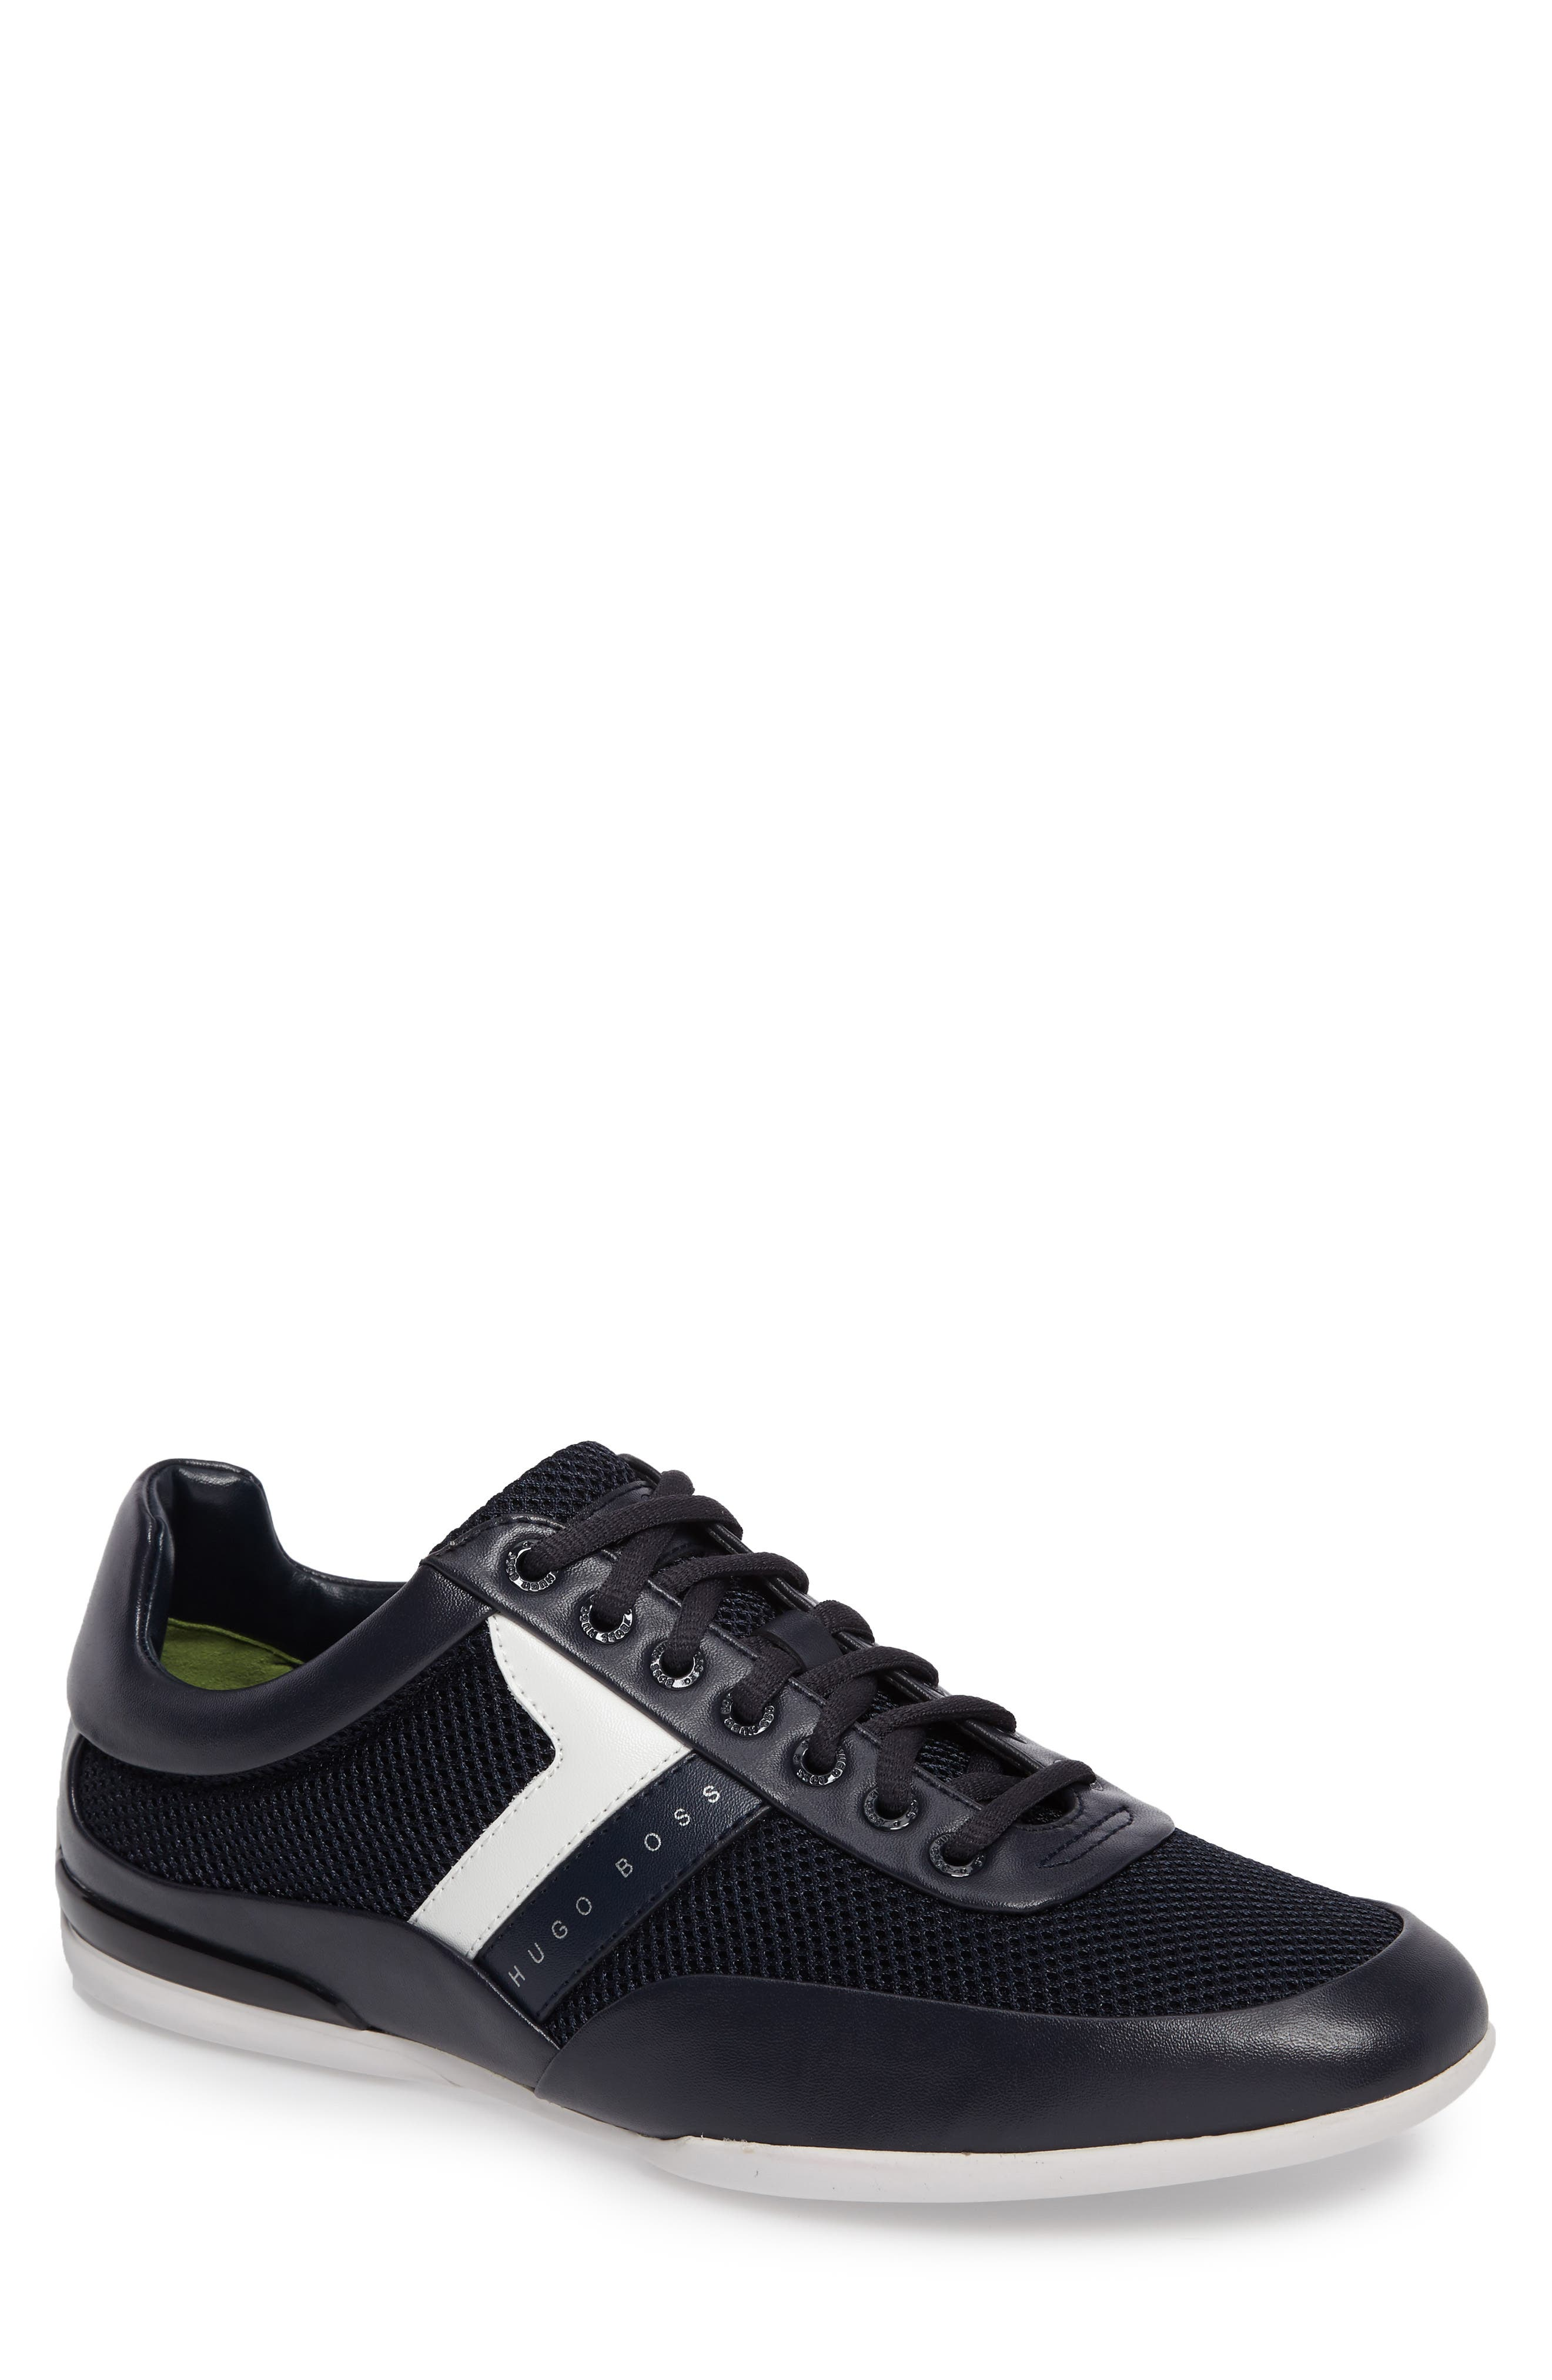 BOSS Green Space Sneaker (Men)